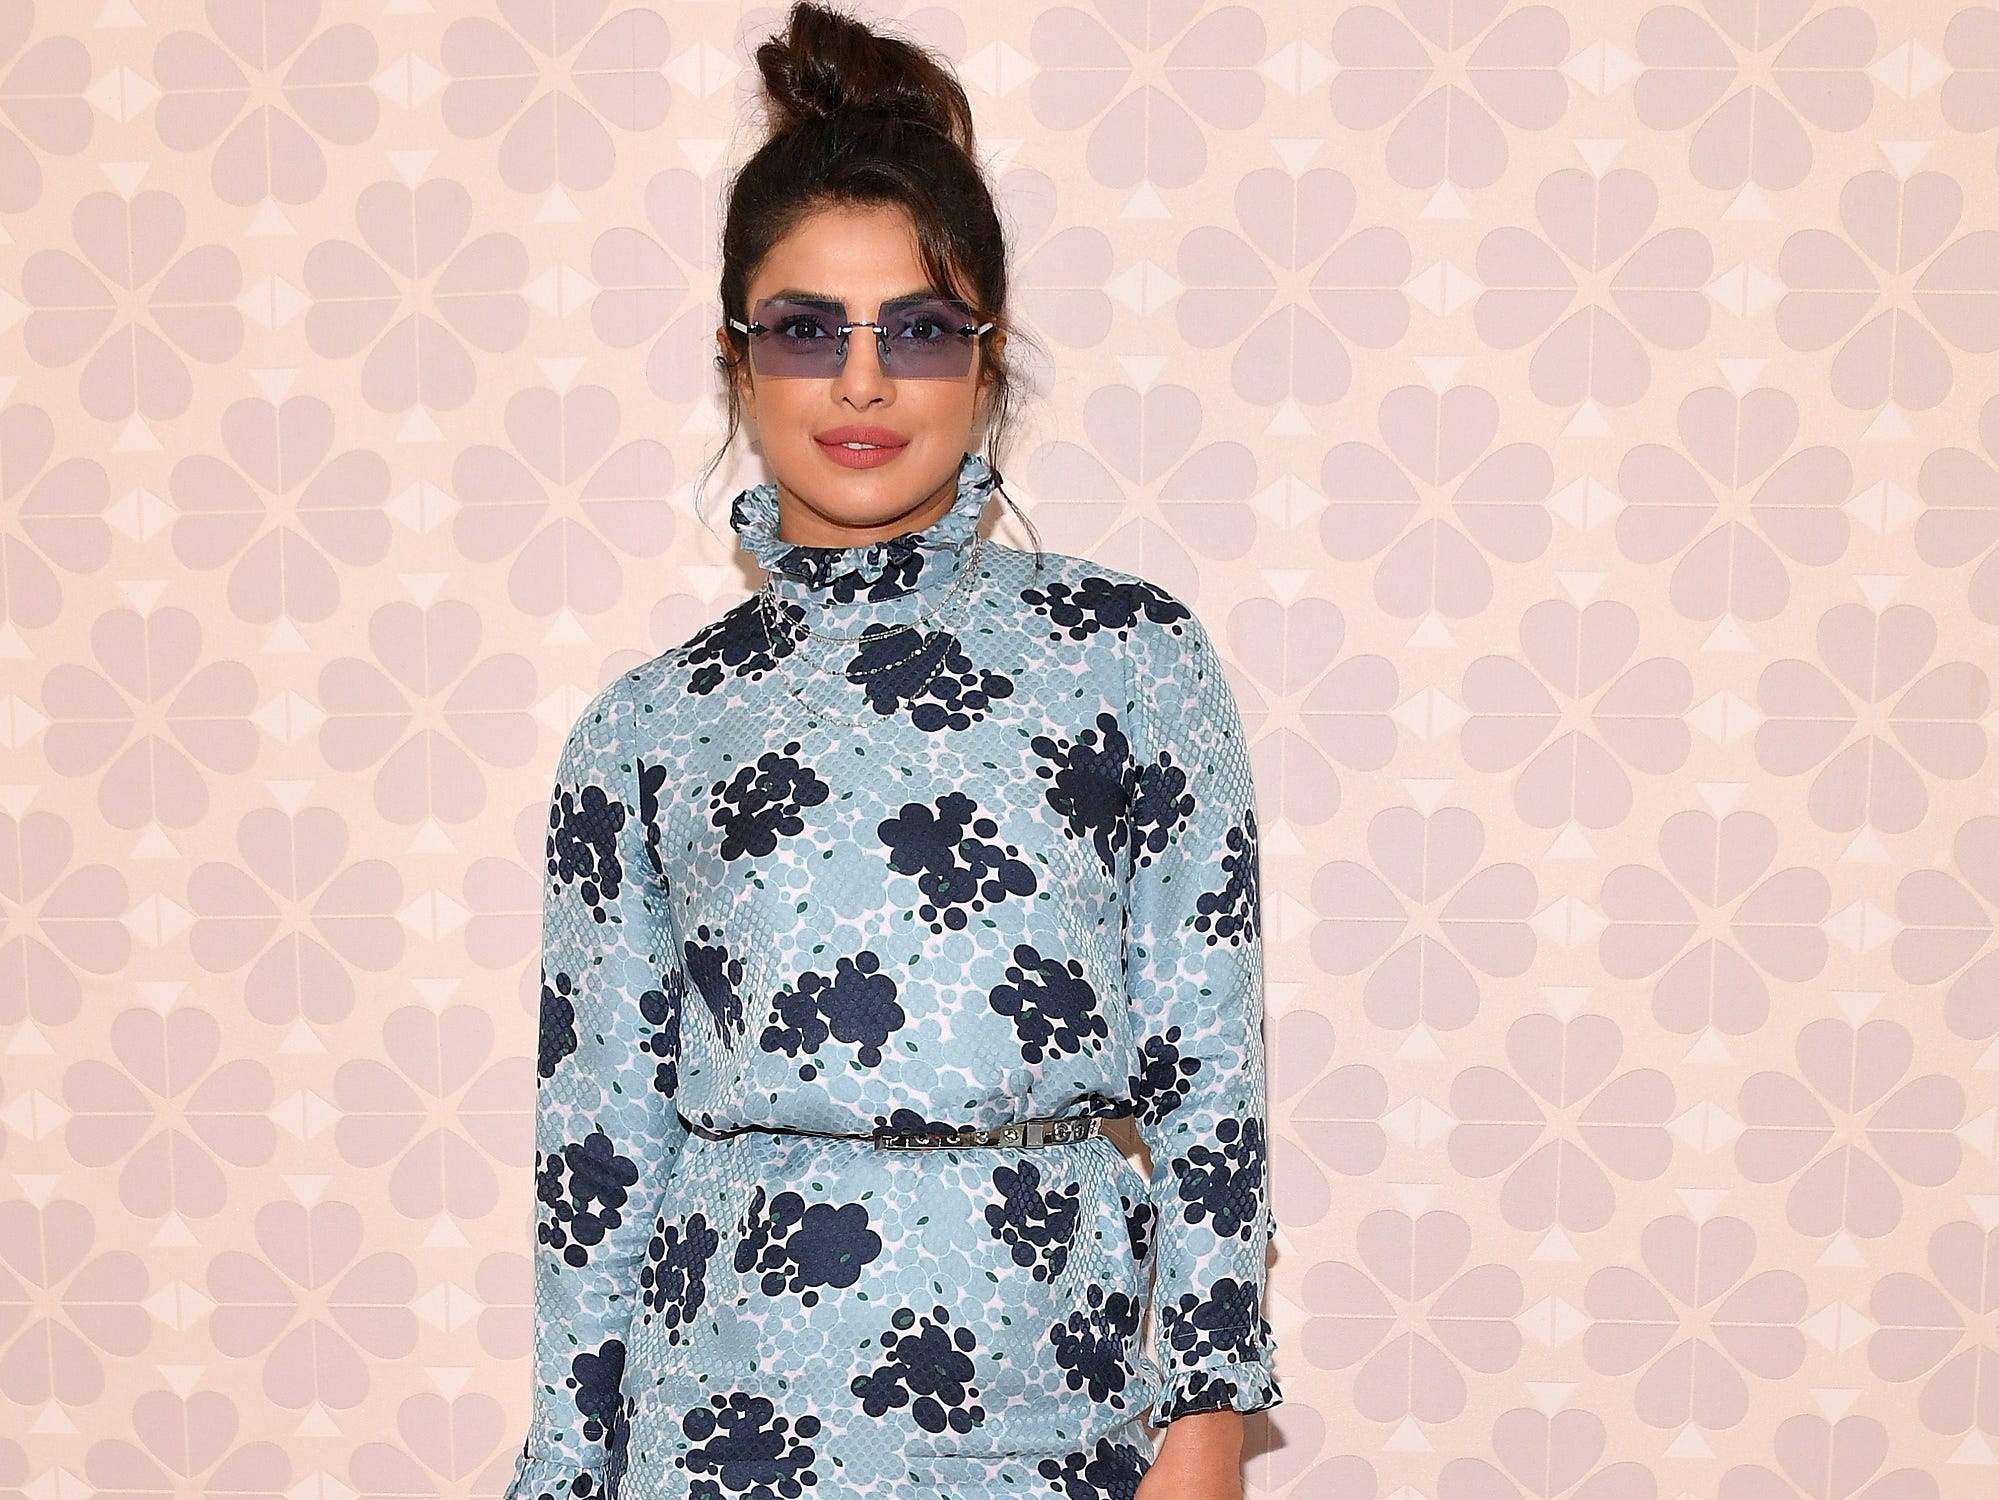 NEW YORK, NY - SEPTEMBER 07:  Actress Priyanka Chopra attends the Kate Spade New York Fashion Show during New York Fashion Week at New York Public Library on September 7, 2018 in New York City.  (Photo by Dia Dipasupil/Getty Images) ORG XMIT: 775216258 ORIG FILE ID: 1028556734